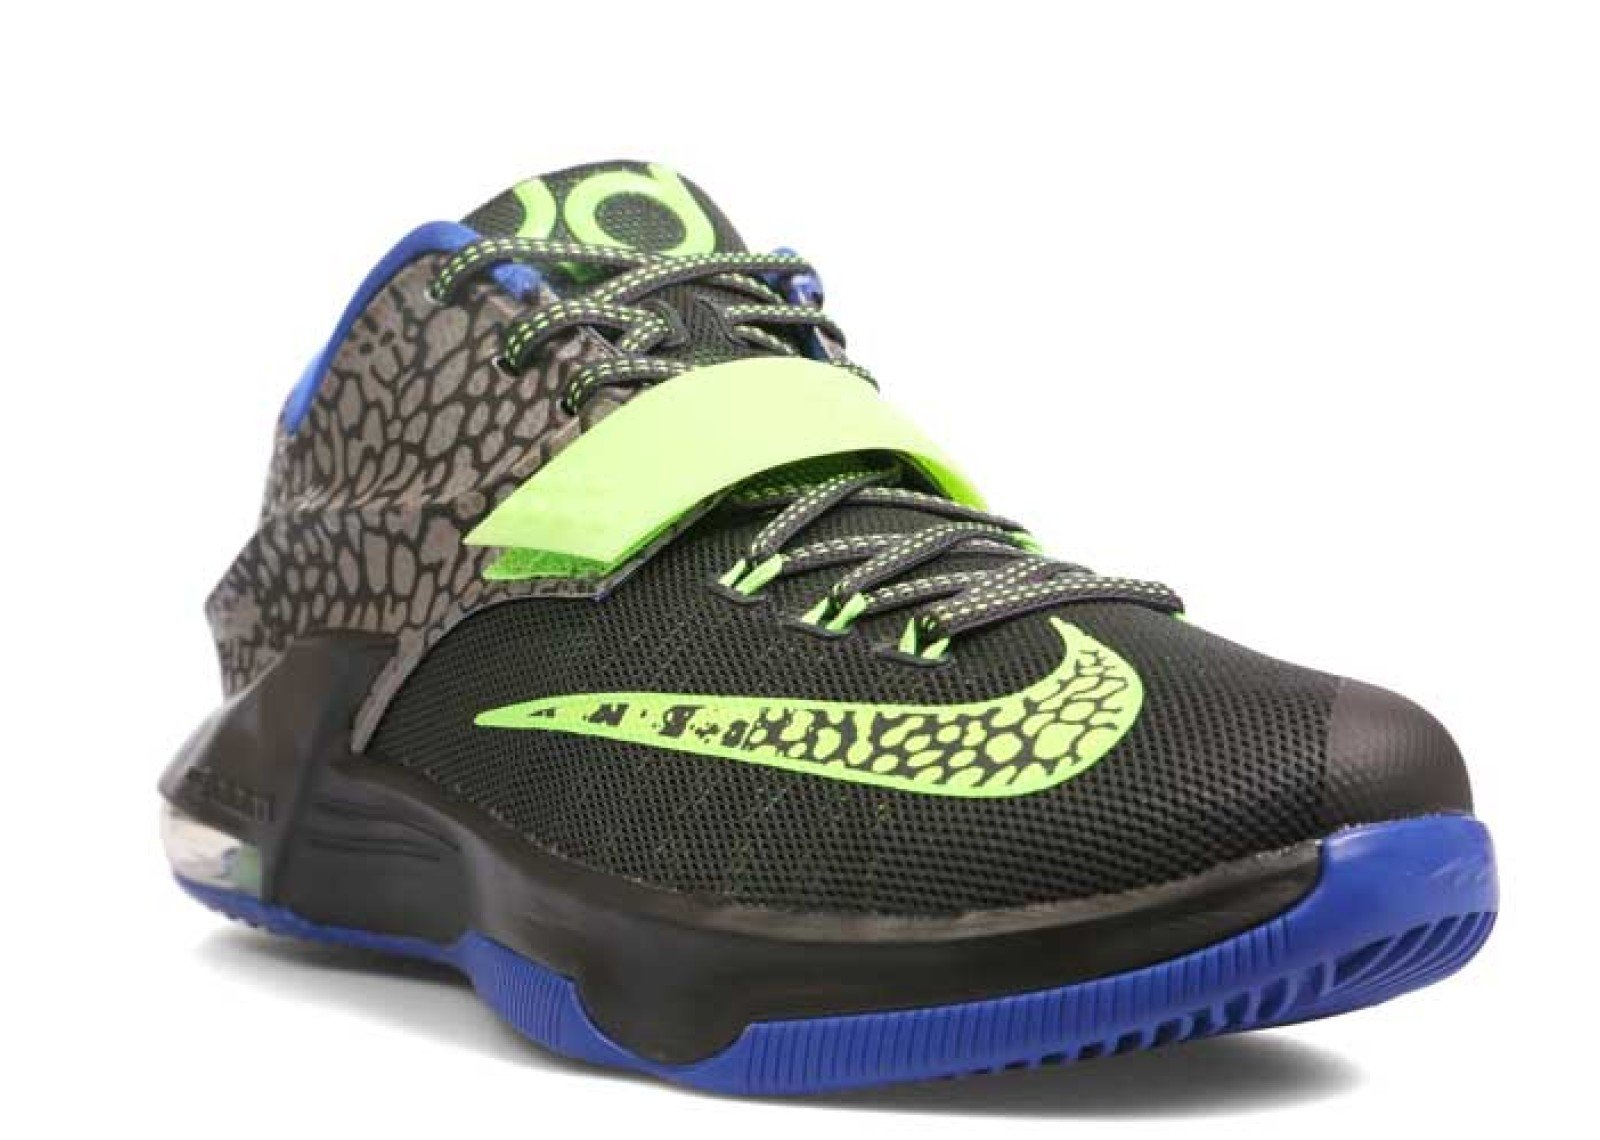 competitive price 5b436 11a69 Galleon - Nike KD VII Electric Eel Men's Shoes Metallic Pewter/Flash Lime- Anthracite-Lyon Blue 653996-030 (12 D(M) US)